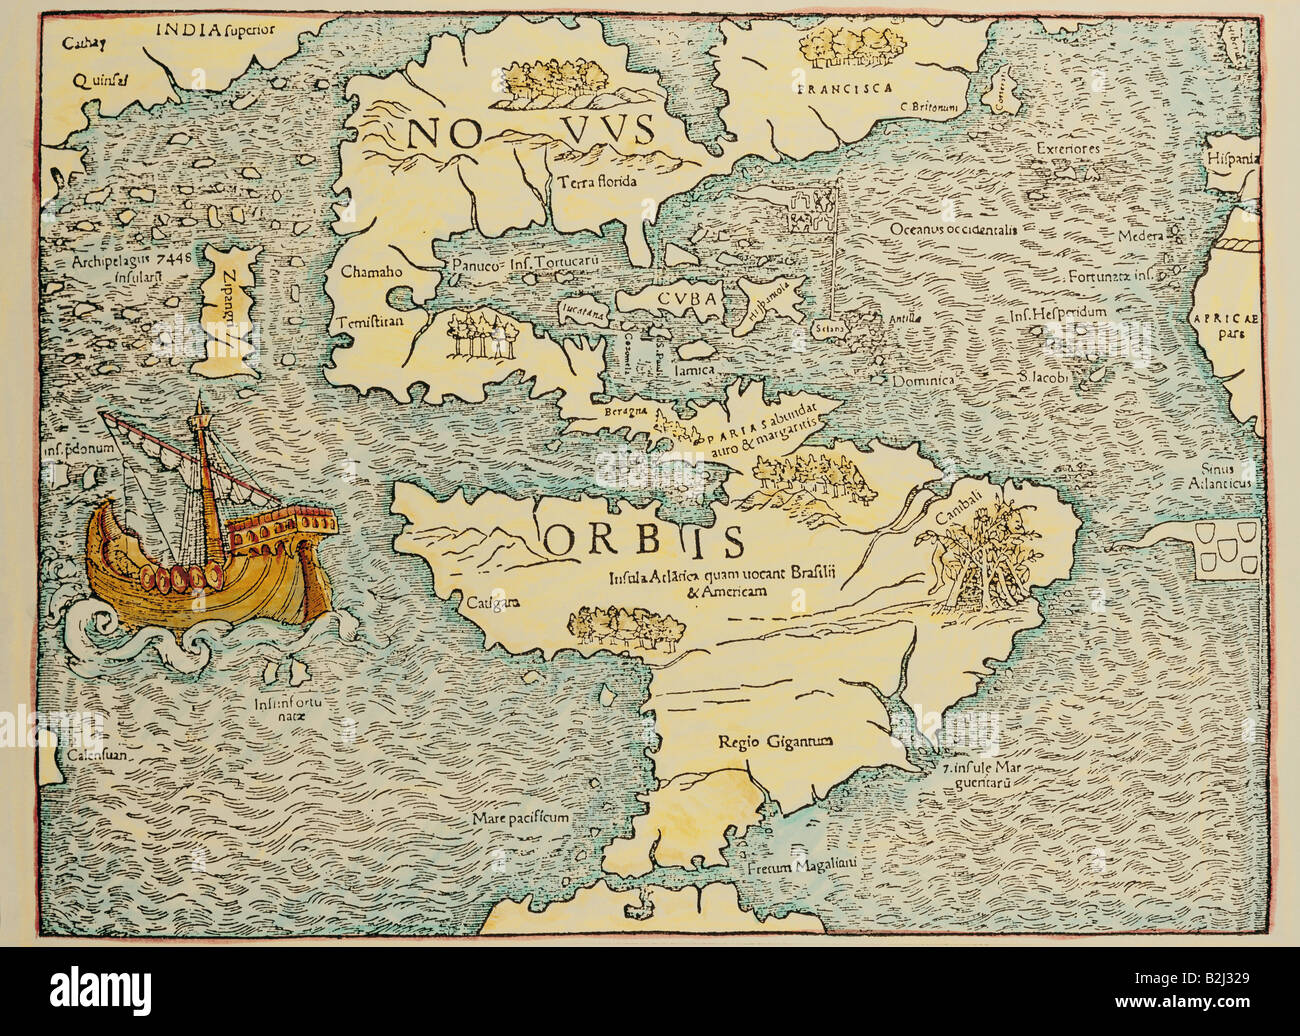 Cartography Maps South And North America Atlantic Pacific Ocean Stock Photo Alamy